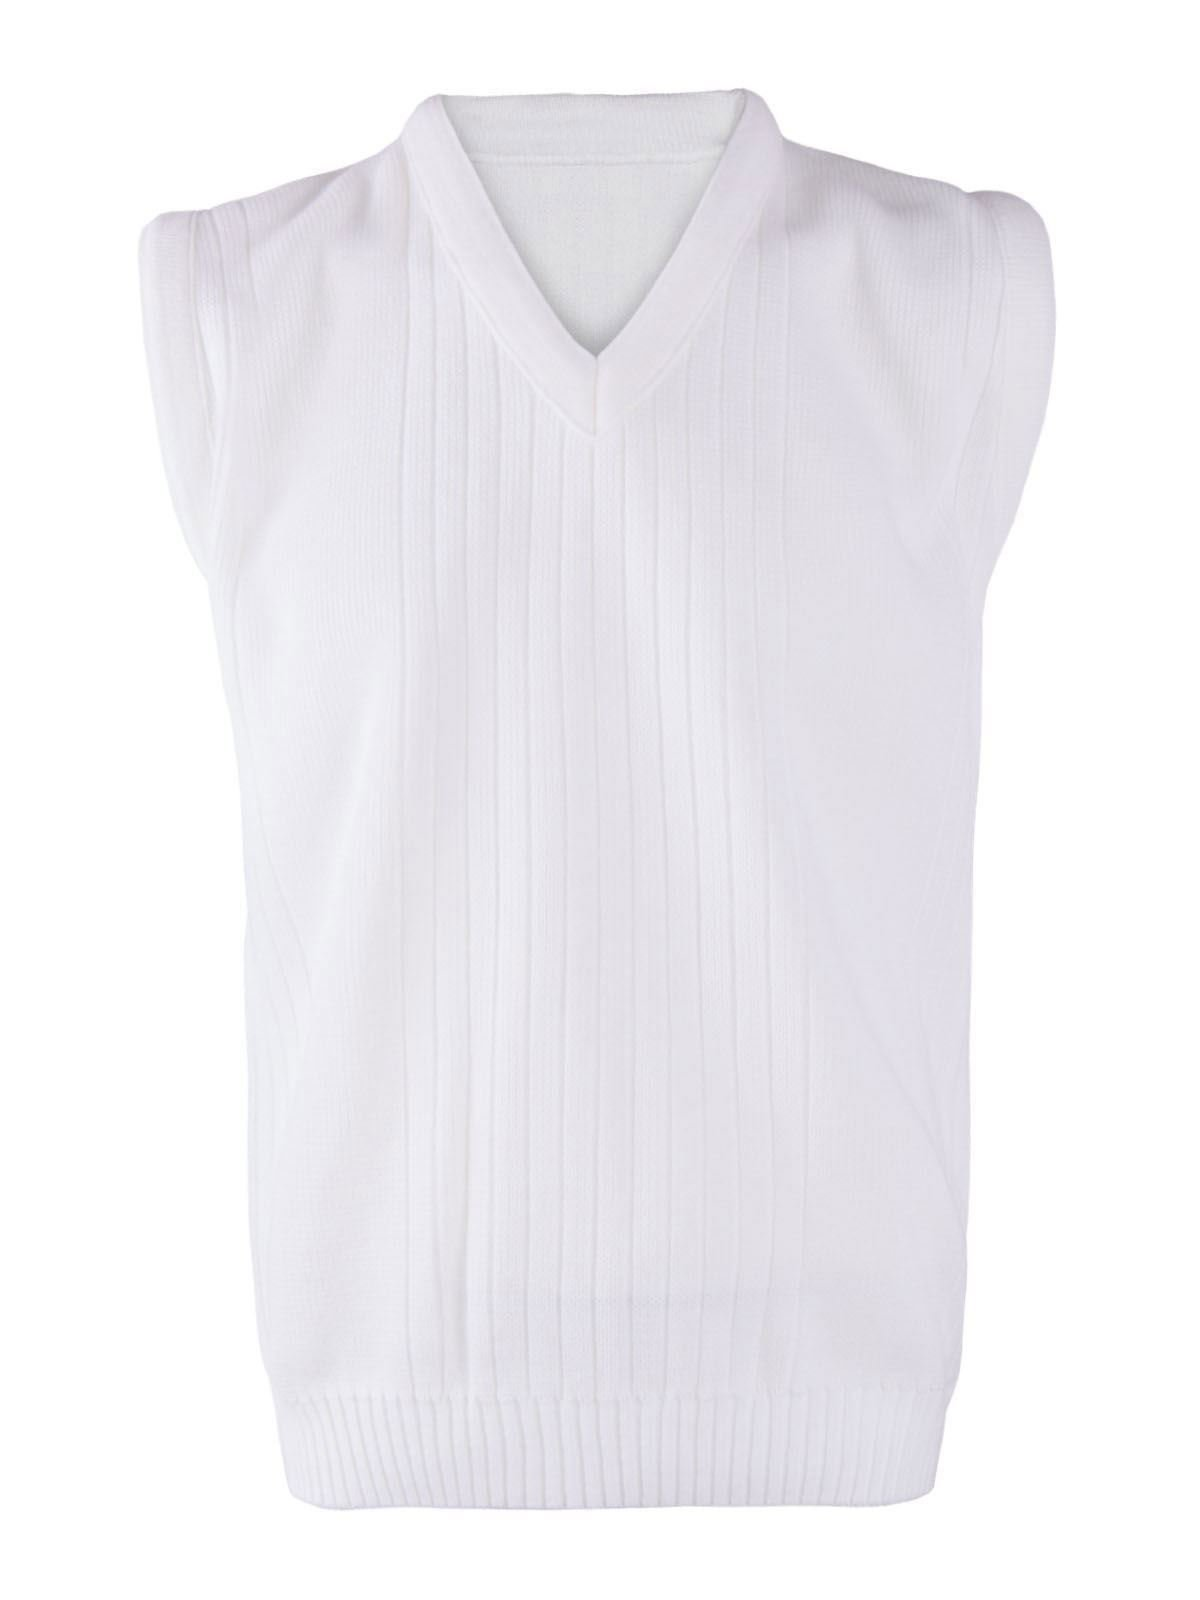 Rimi Hanger Mens Lawn Bowling Sleeveless V Neck Knitted Vest Top Adults Ribbed White Sweater White Large